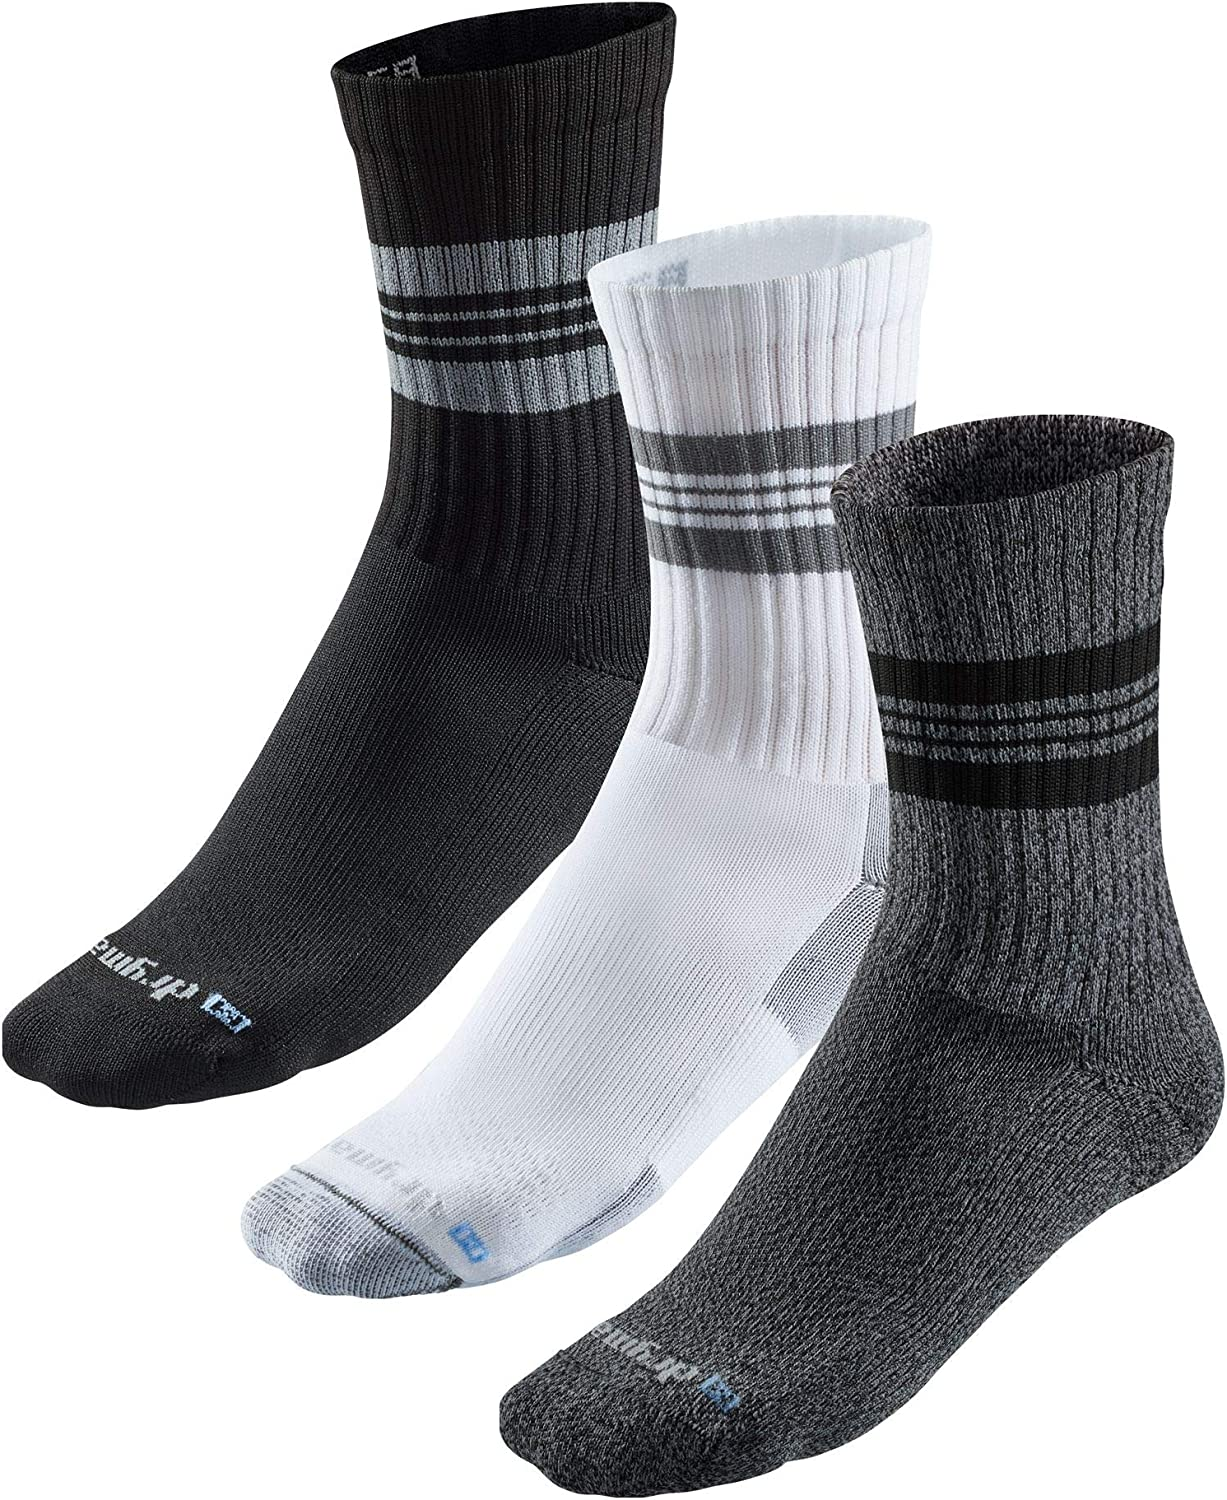 Drymax R-Gear Crew Socks for Men and Women (3 Pack) | Super Breathable Keep Feet Dry, Comfy and Blister-Free